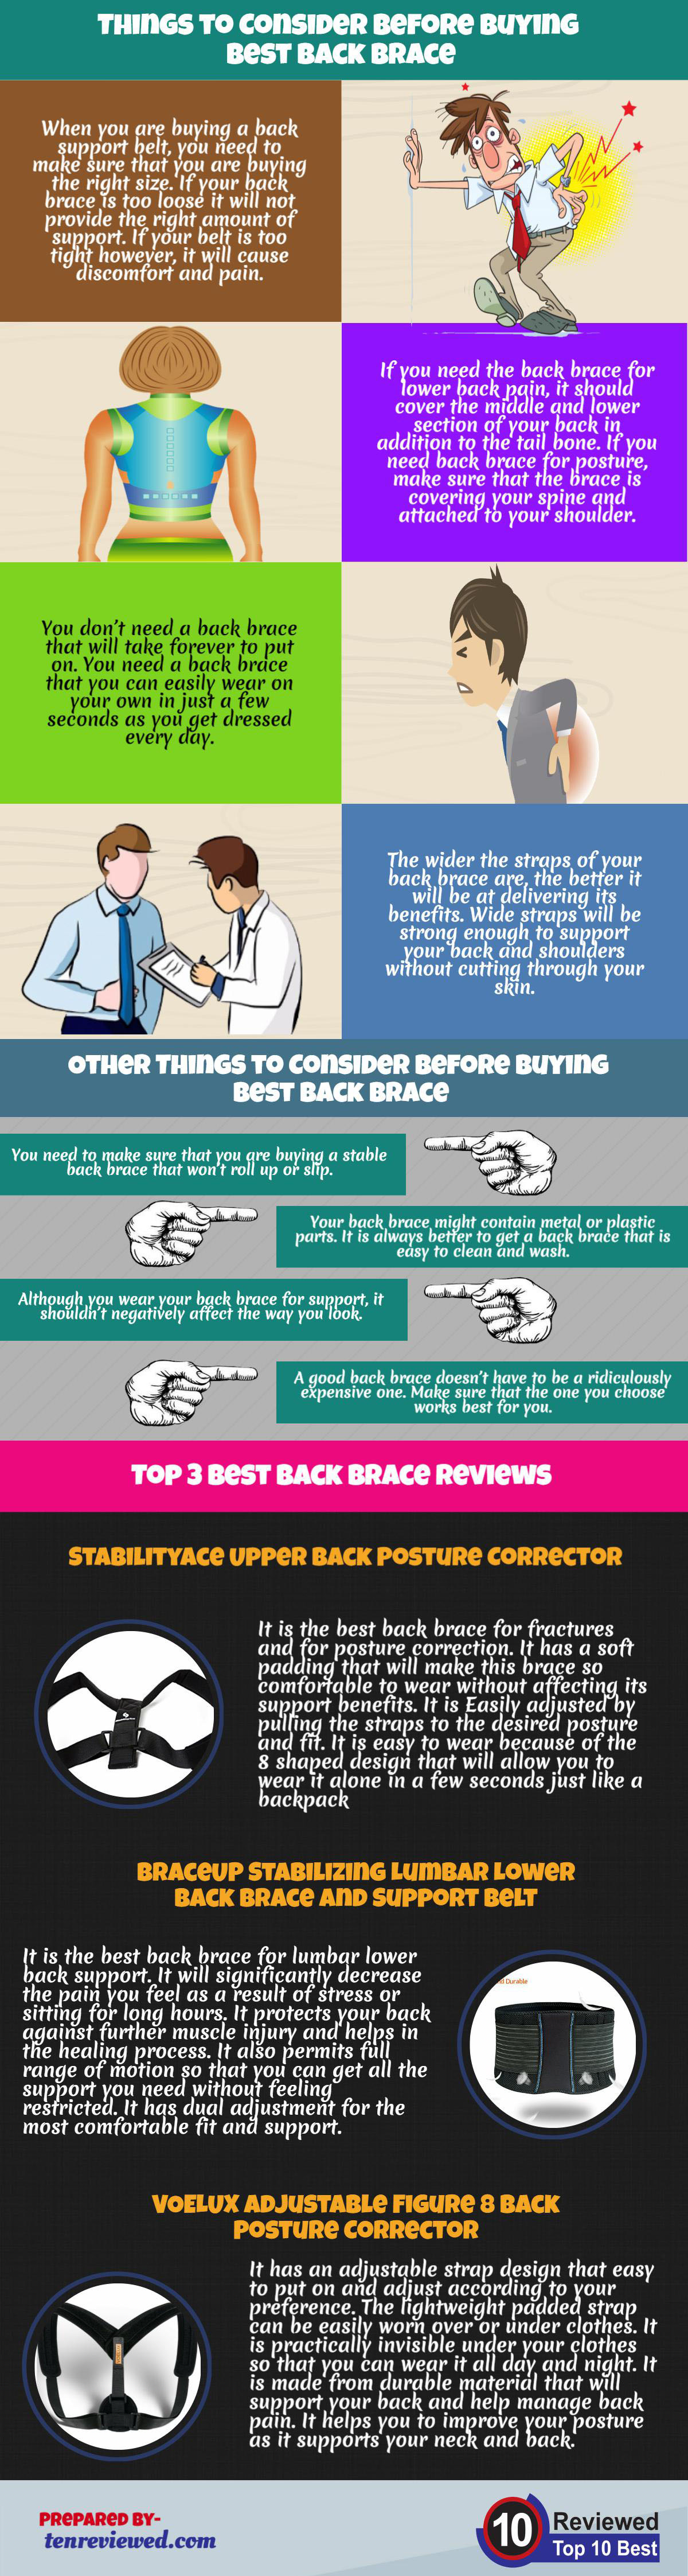 Back Brace Buying Guide